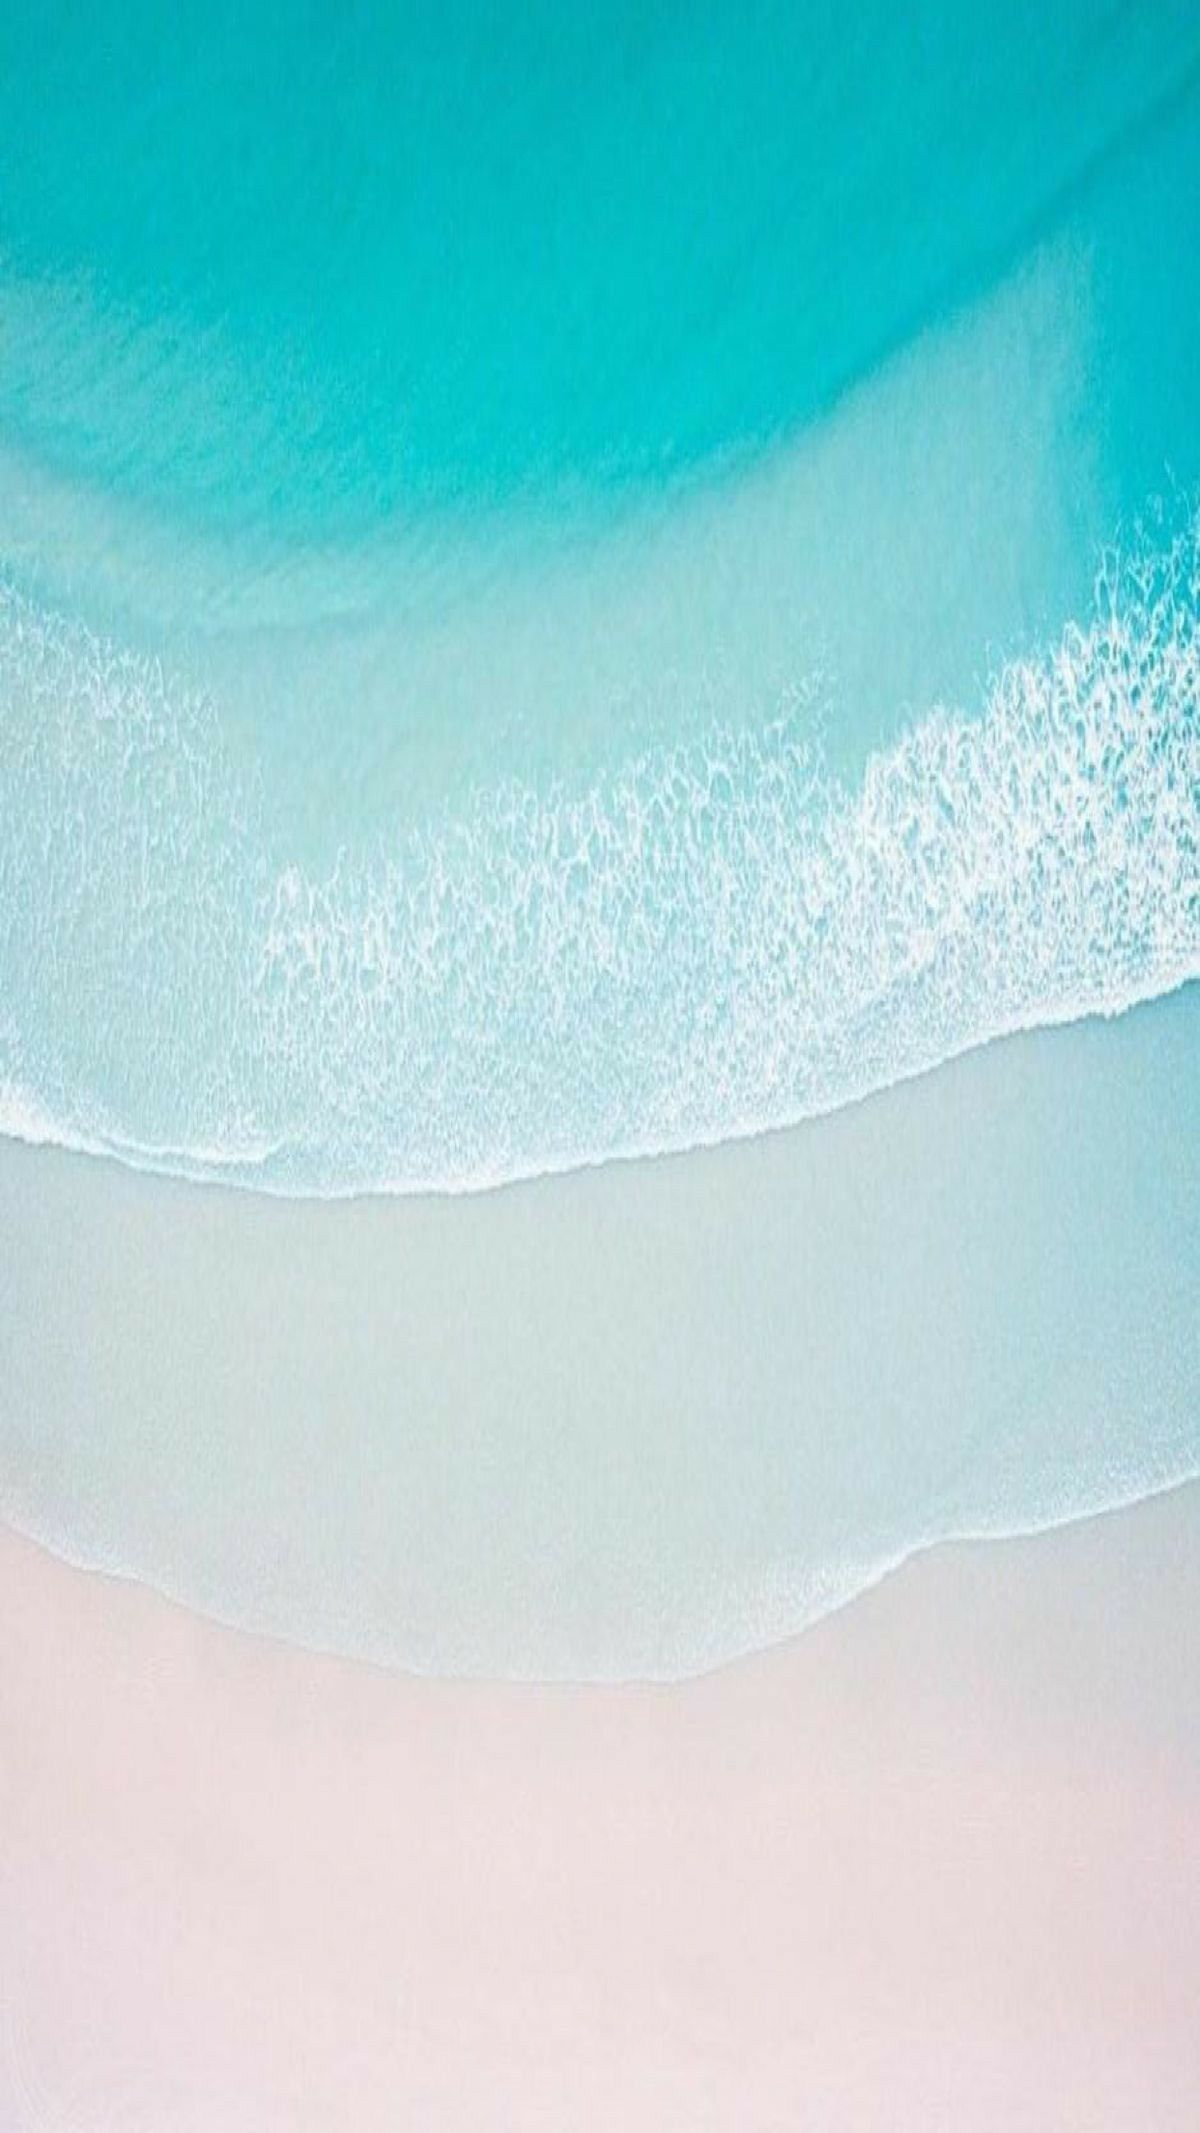 Beach Wallpaper Iphone 11